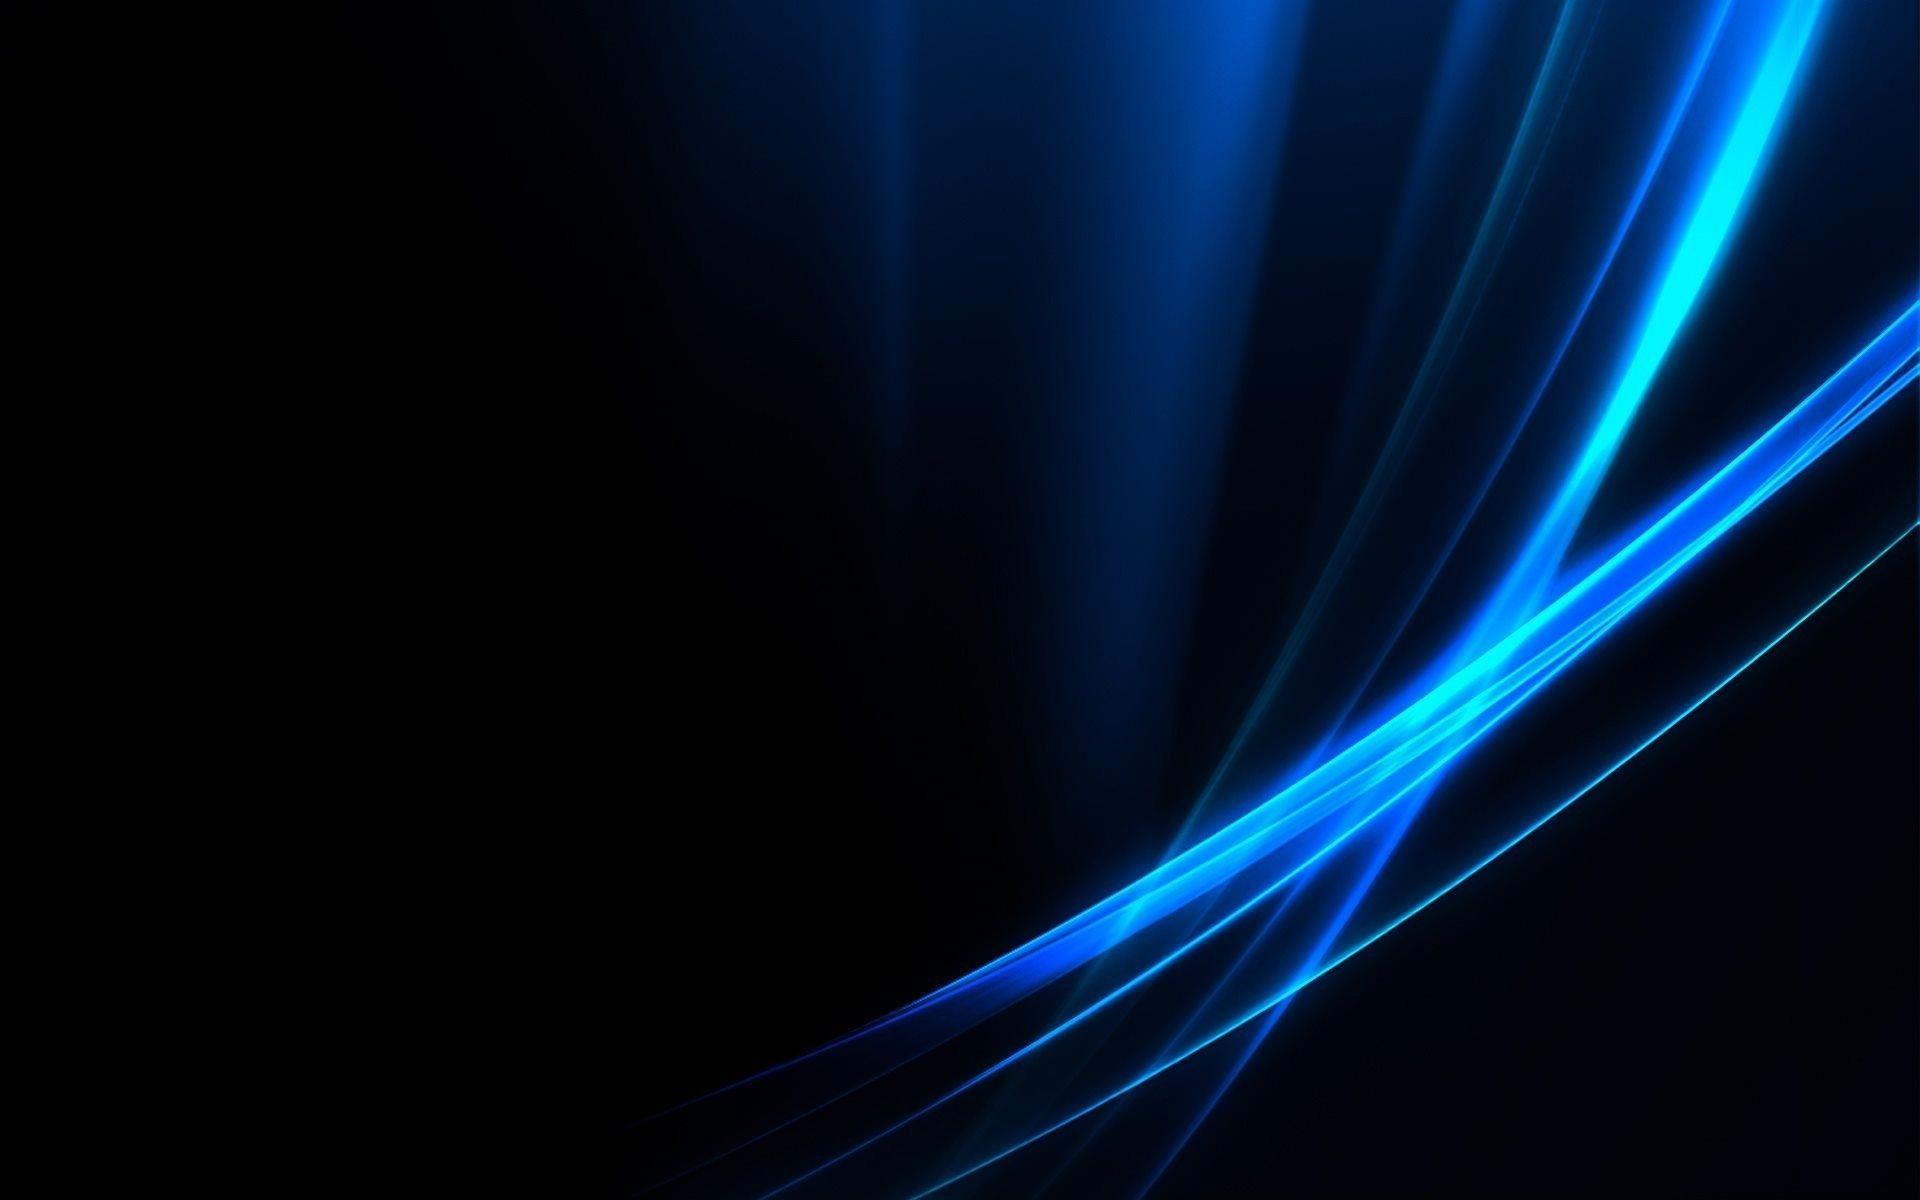 Cool Blue Backgrounds - Wallpaper Cave